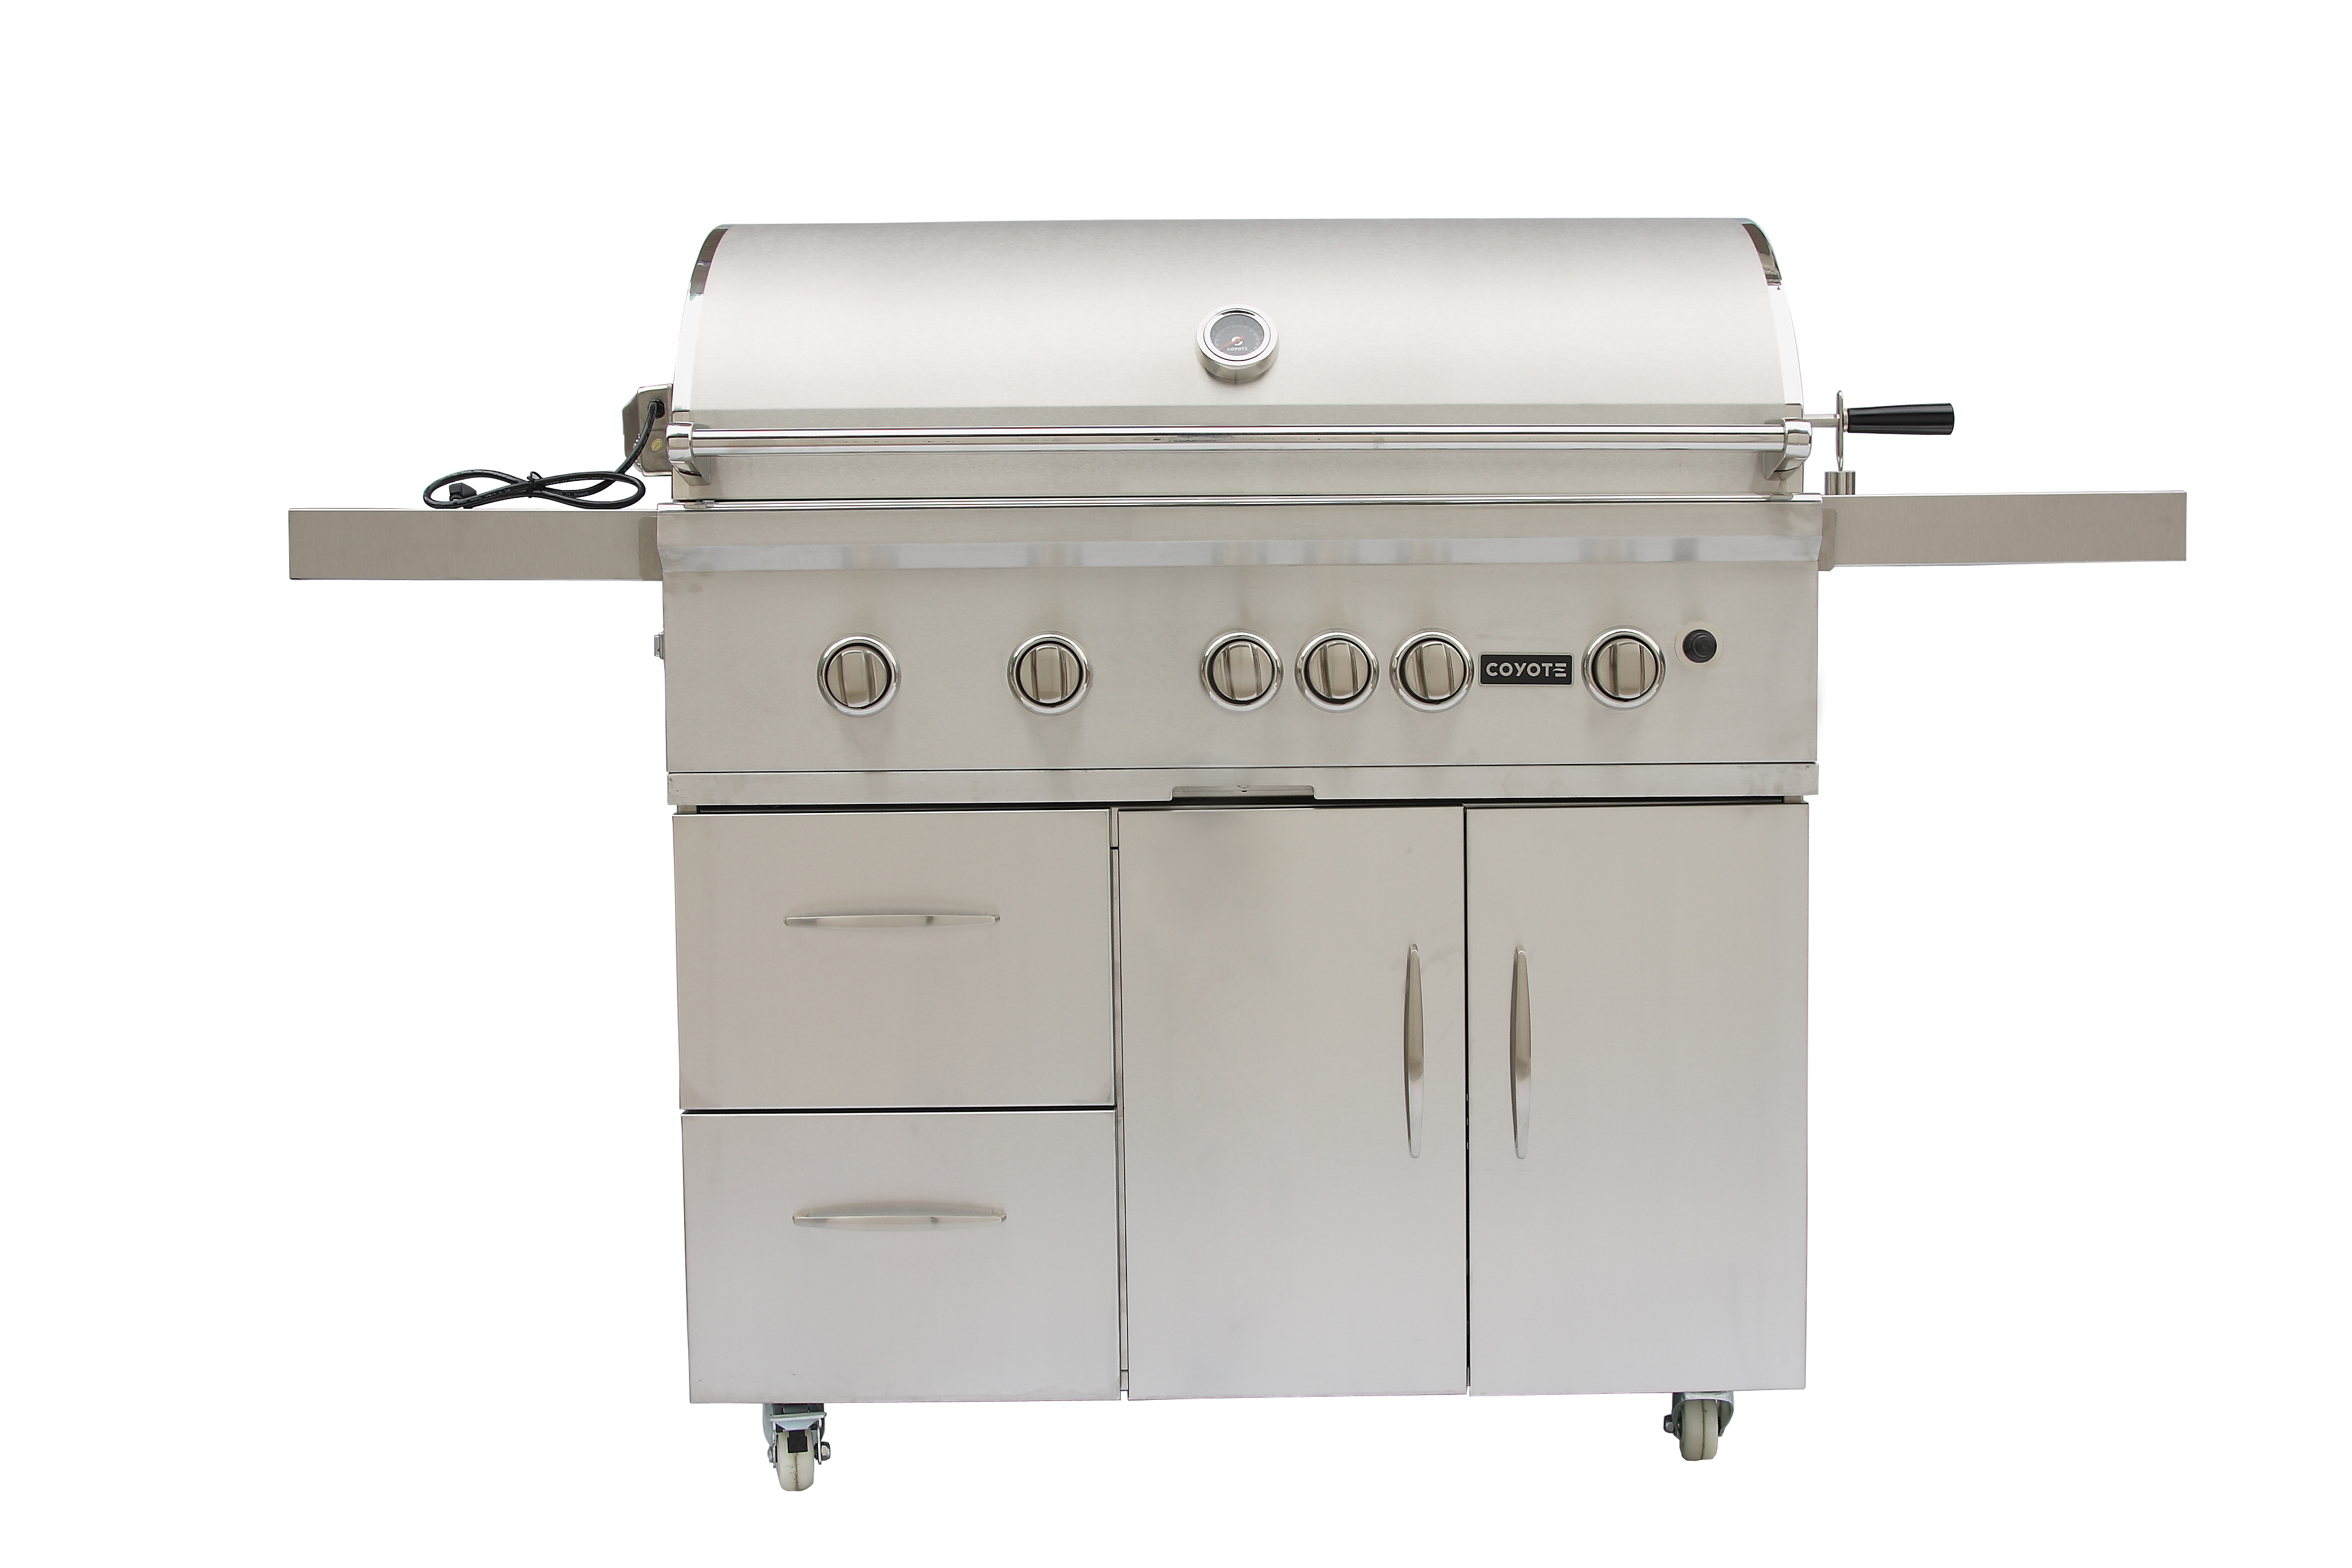 Coyote outdoor living barbecue grills nevada outdoor living for Coyote outdoor grills reviews